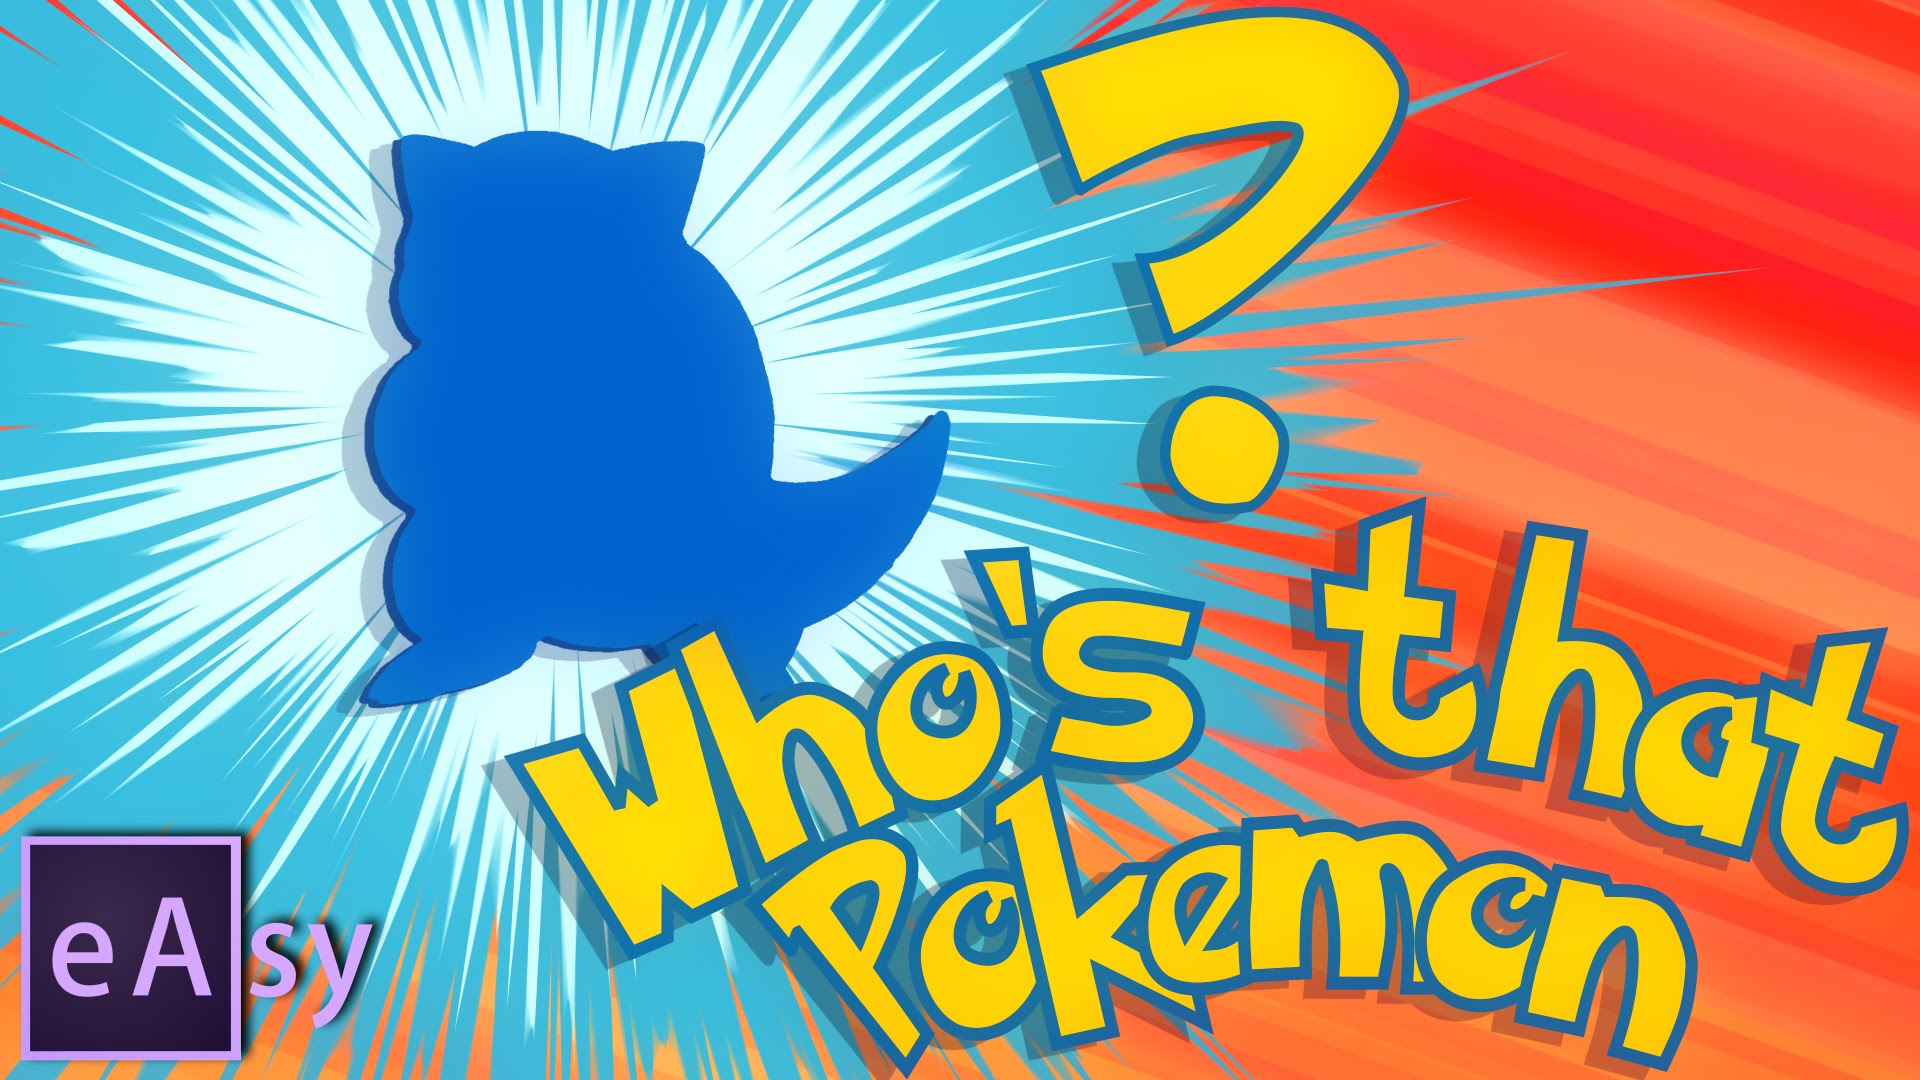 Whos That Pokemon Template | merrychristmaswishes.info